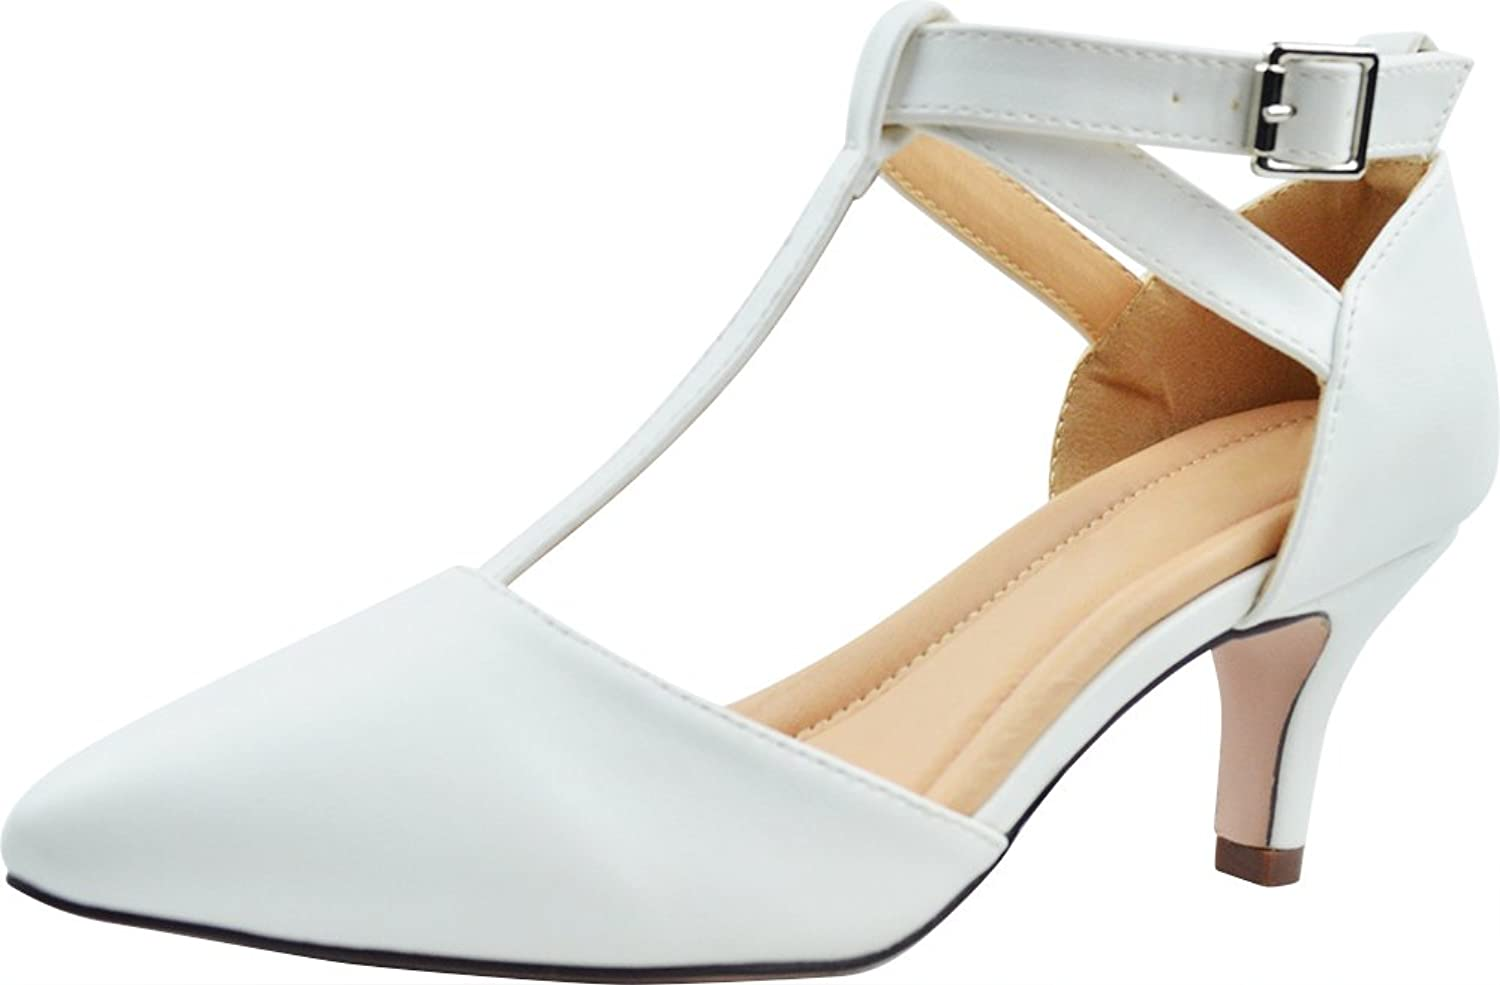 Cambridge Select Women's Closed Pointed Toe T-Strap Buckled Low Kitten Heel Pump